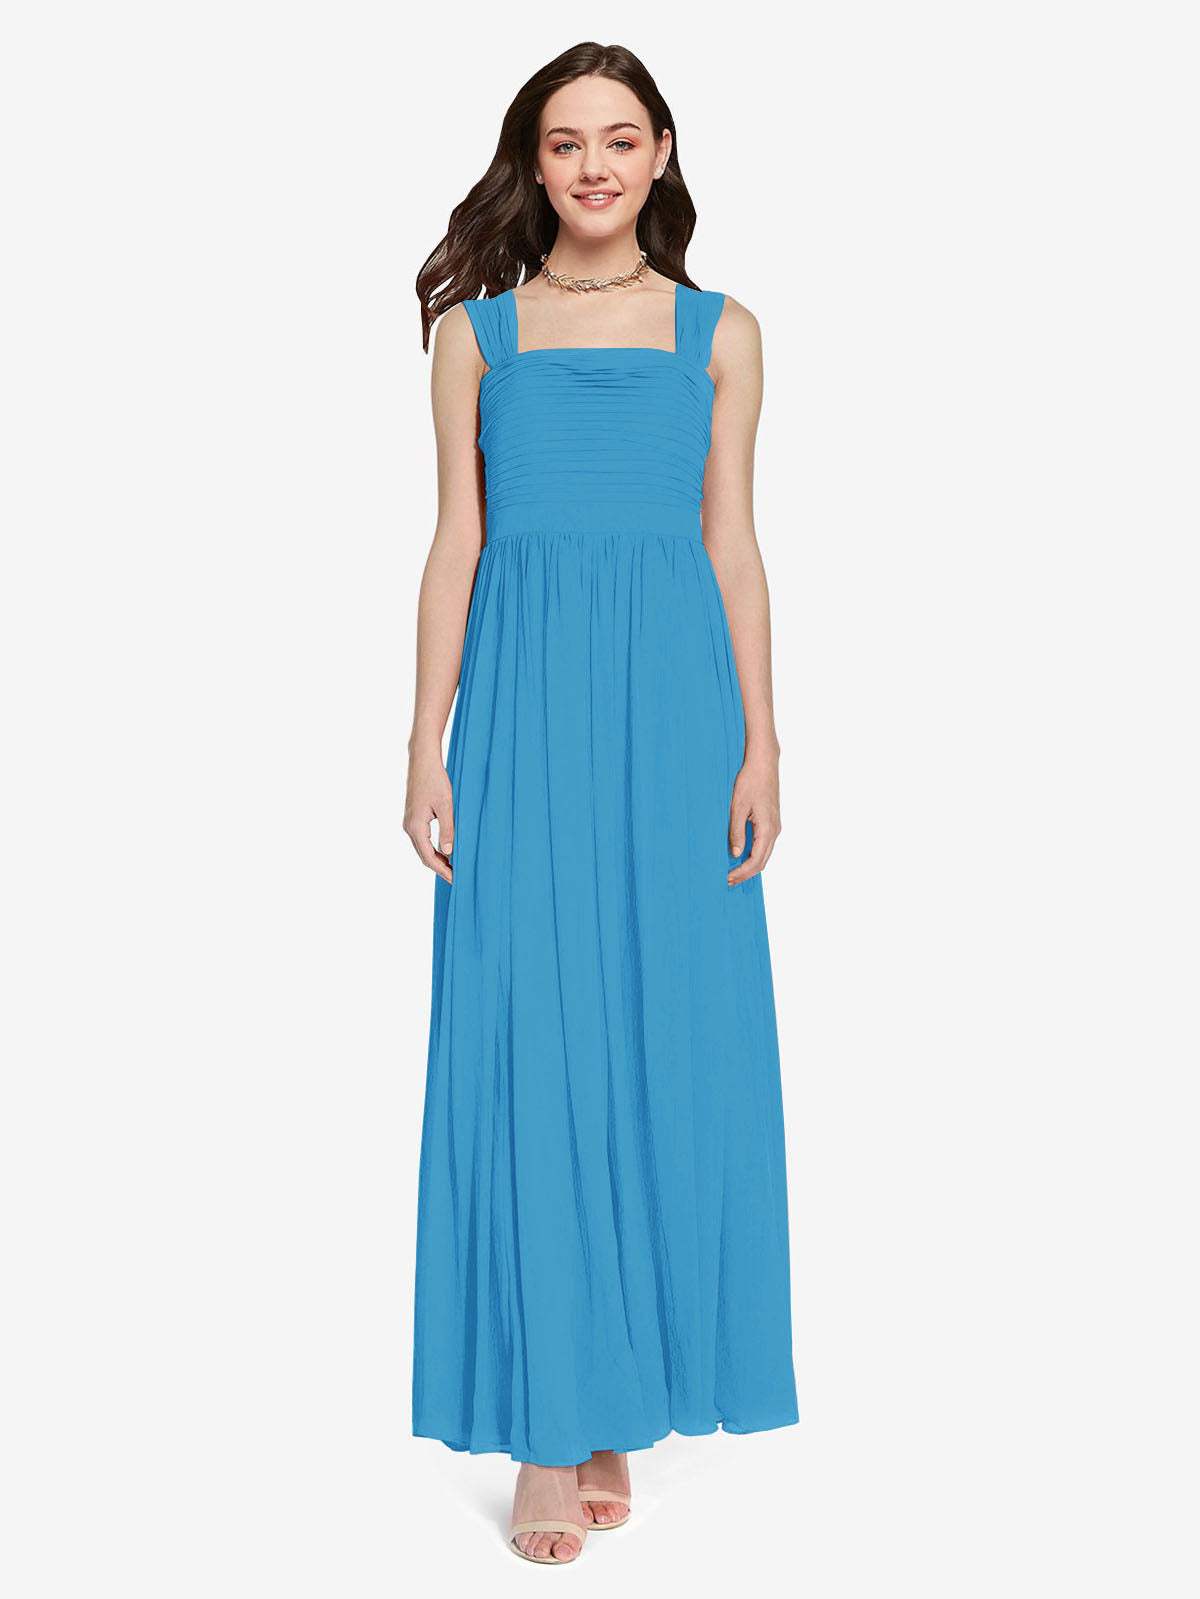 Long A-Line Square Sleeveless Peacock Blue Chiffon Bridesmaid Dress Aldridge